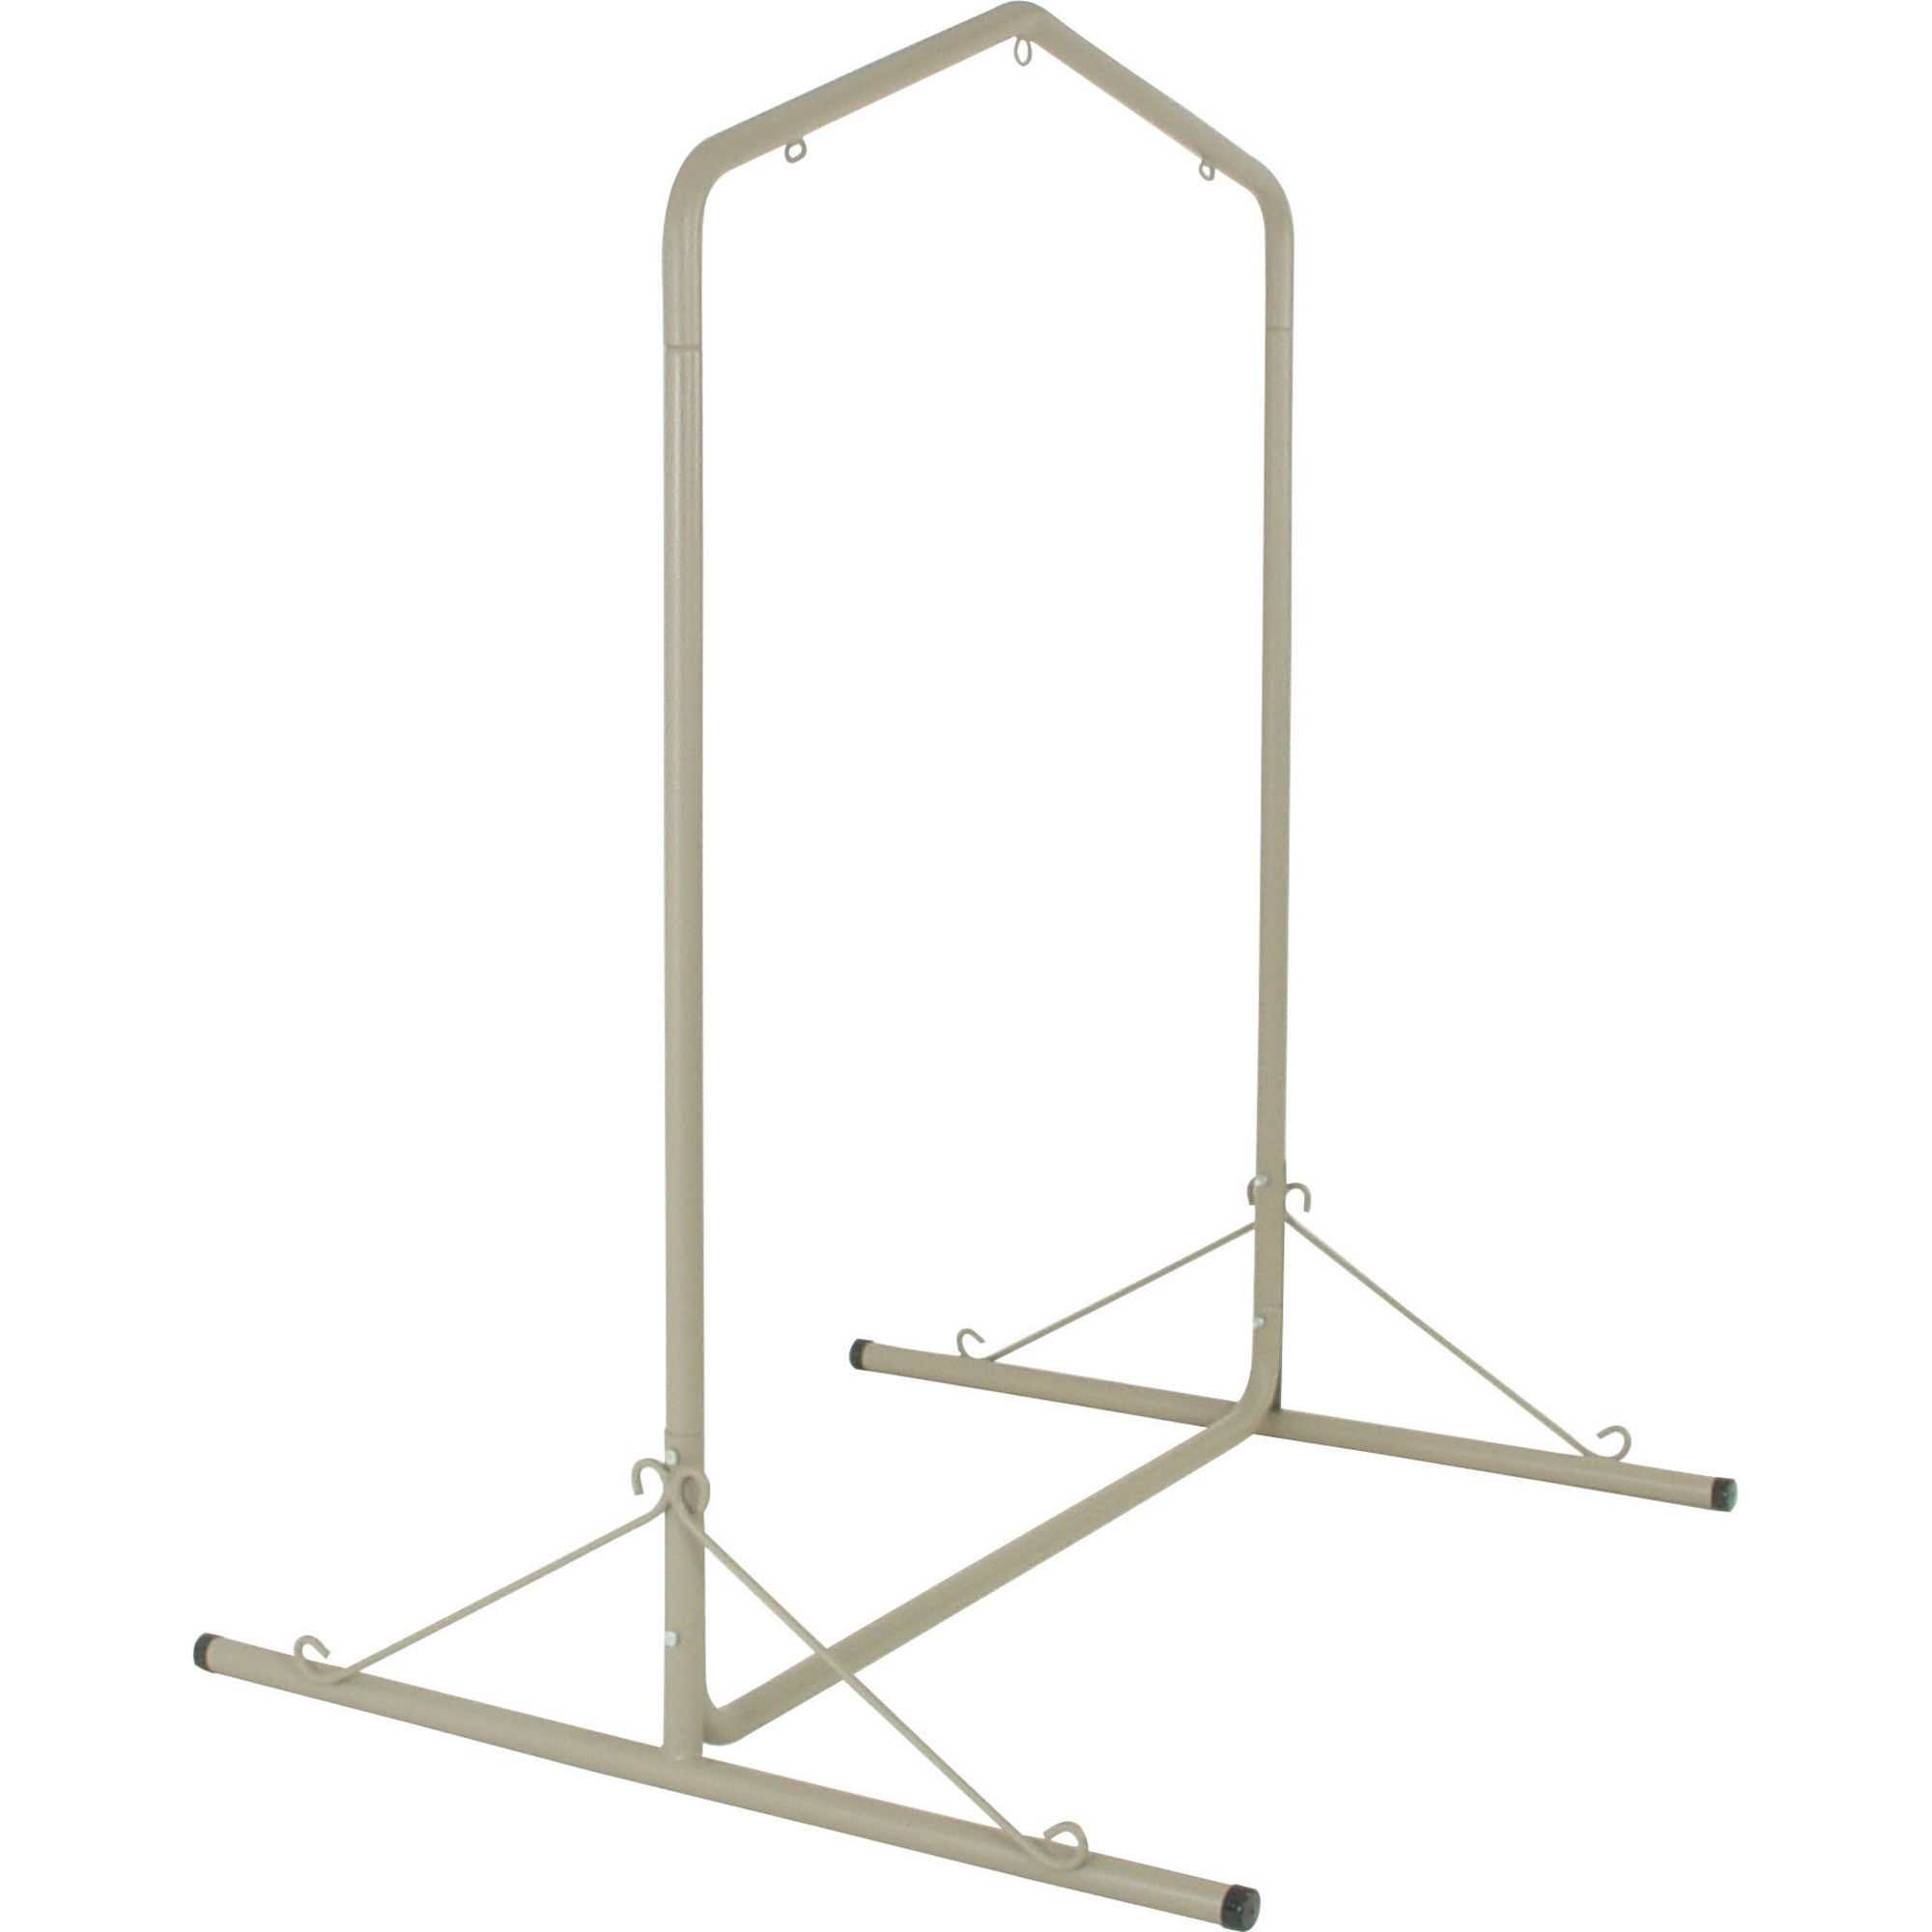 Hatteras hammocks swsc1t steel single swing stand taupe